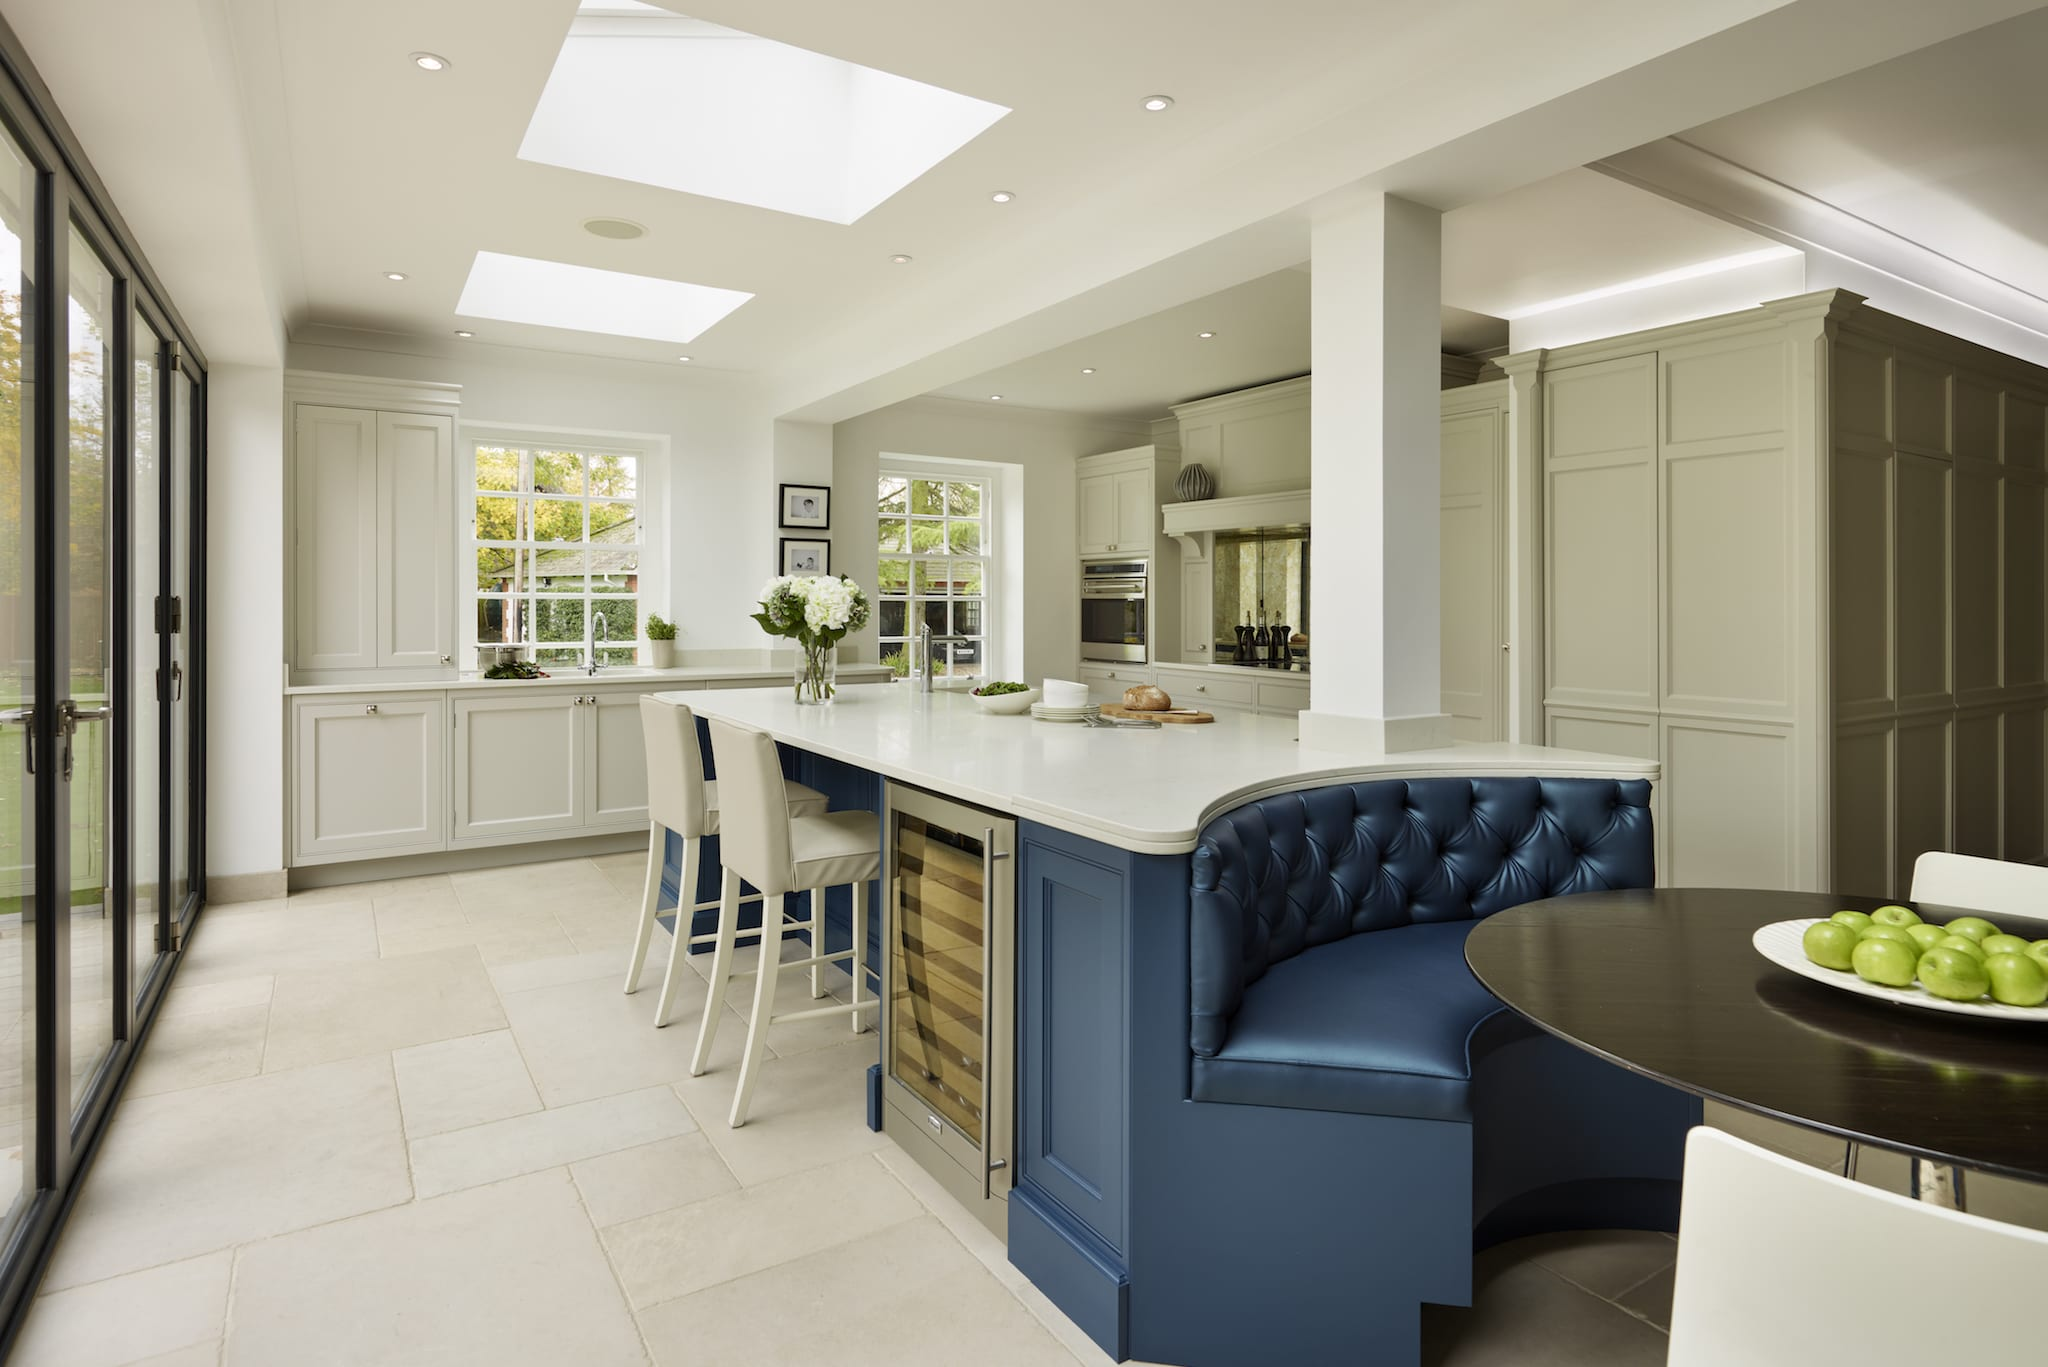 The Uk Houzz Report How Does Your Kitchen Compare